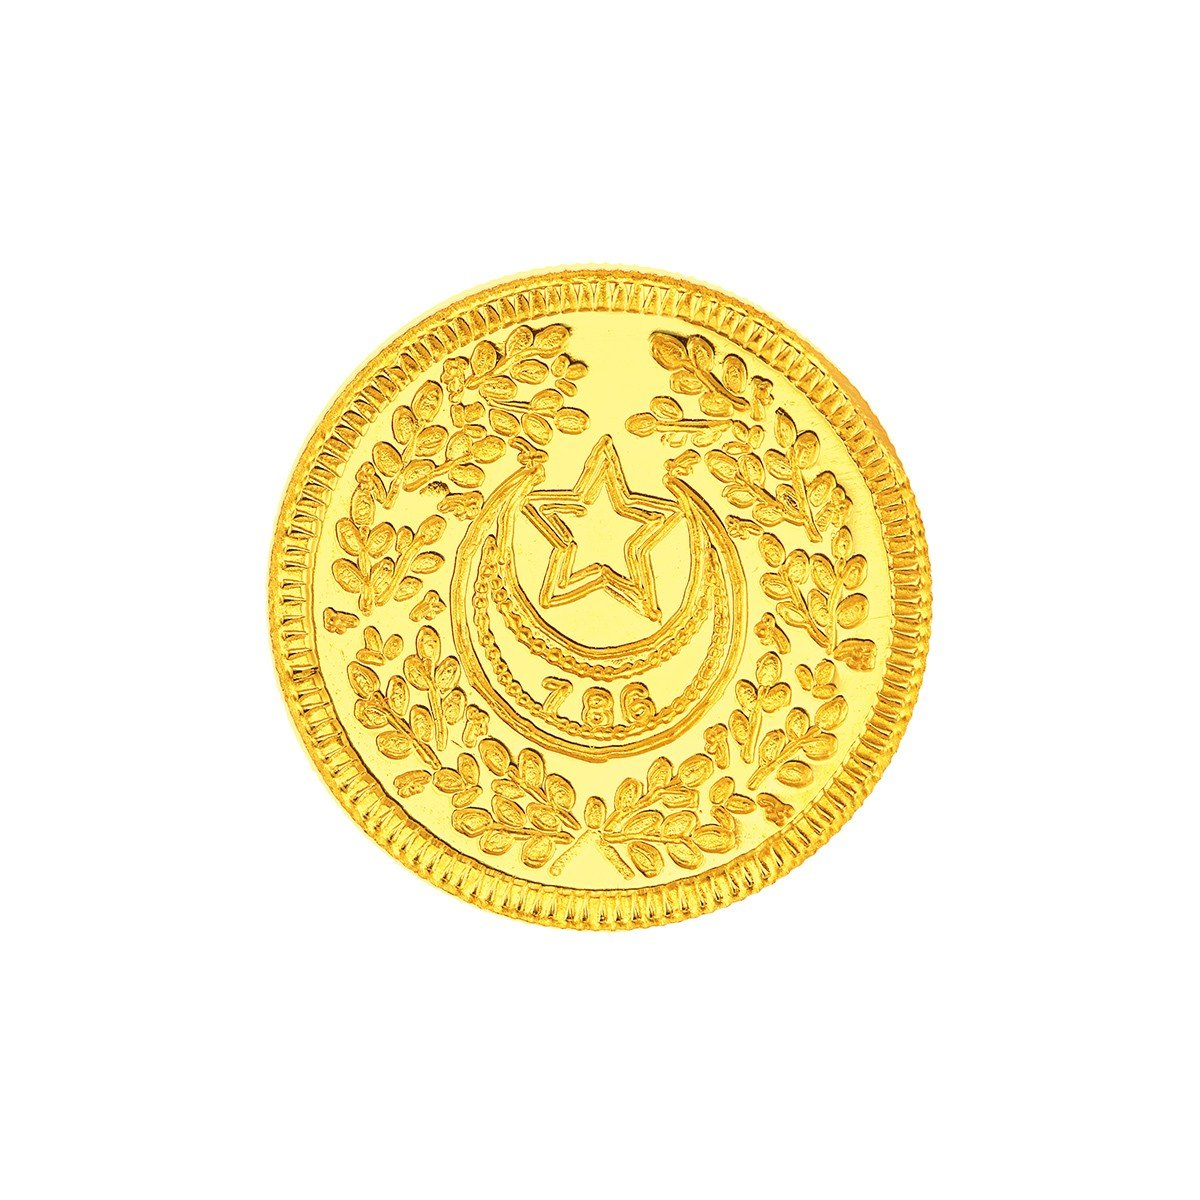 2 Grams 22 Carat Crescent Moon Gold Coin